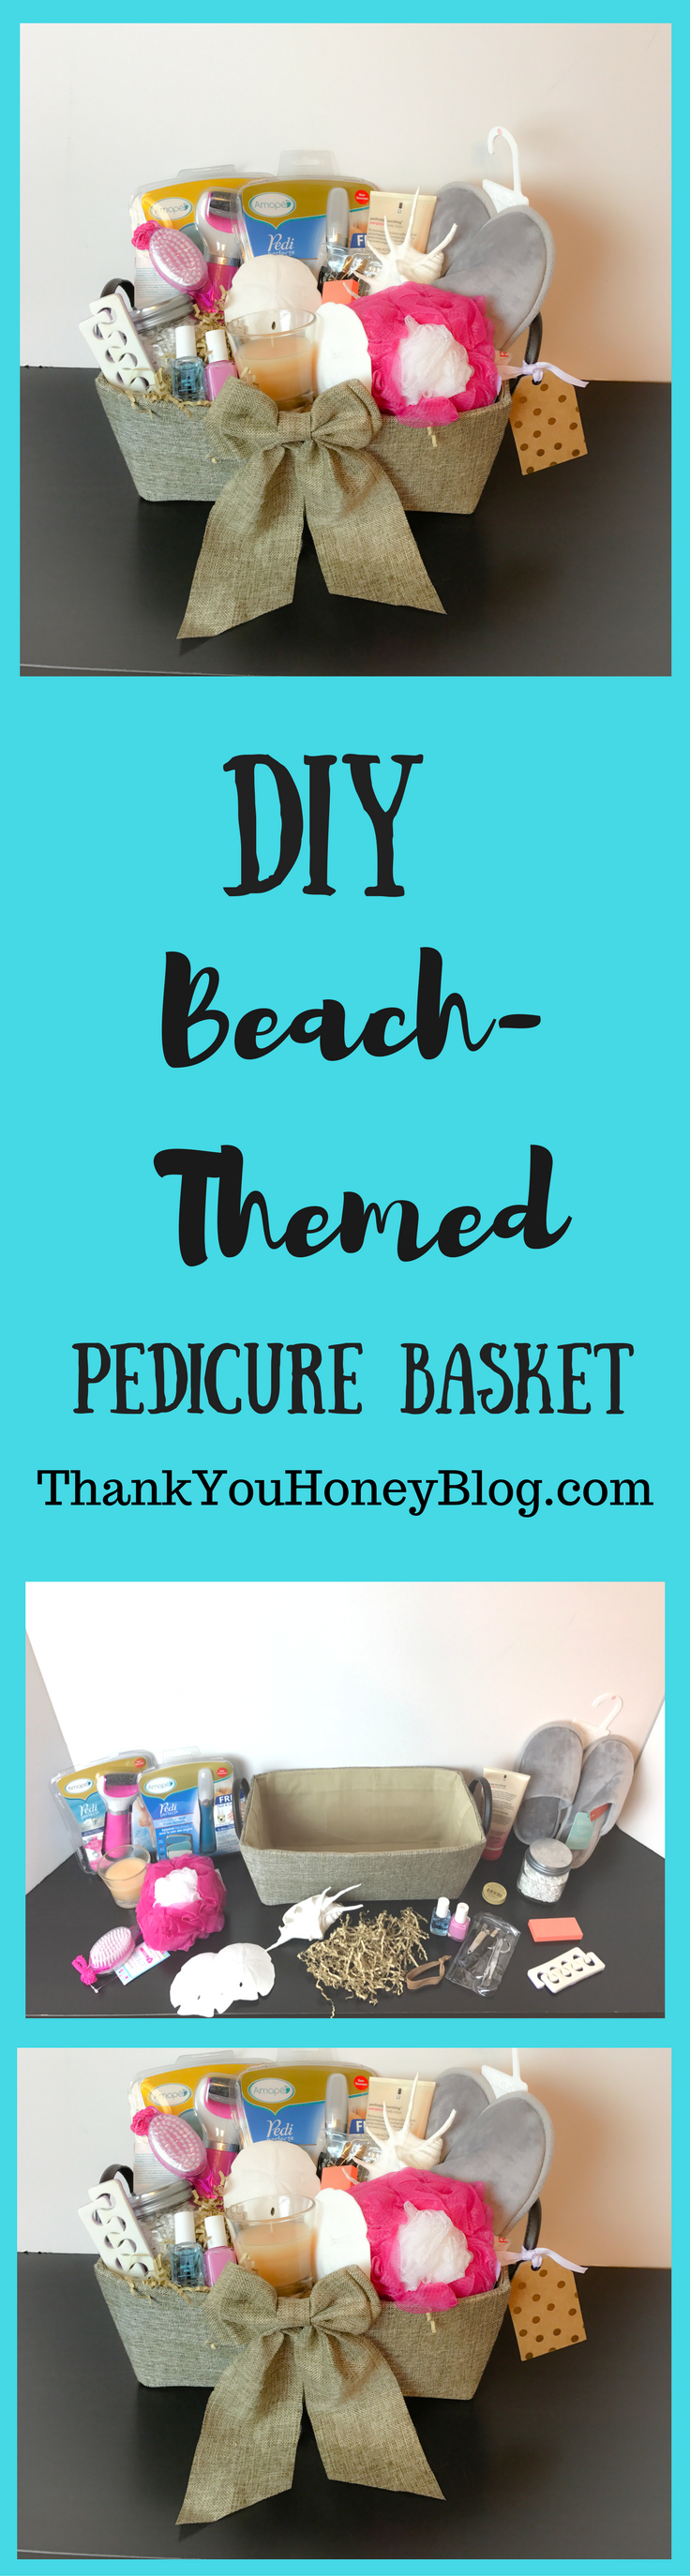 DIY Beach- Themed Pedicure Basket #AmopeForTheHoliday #ad